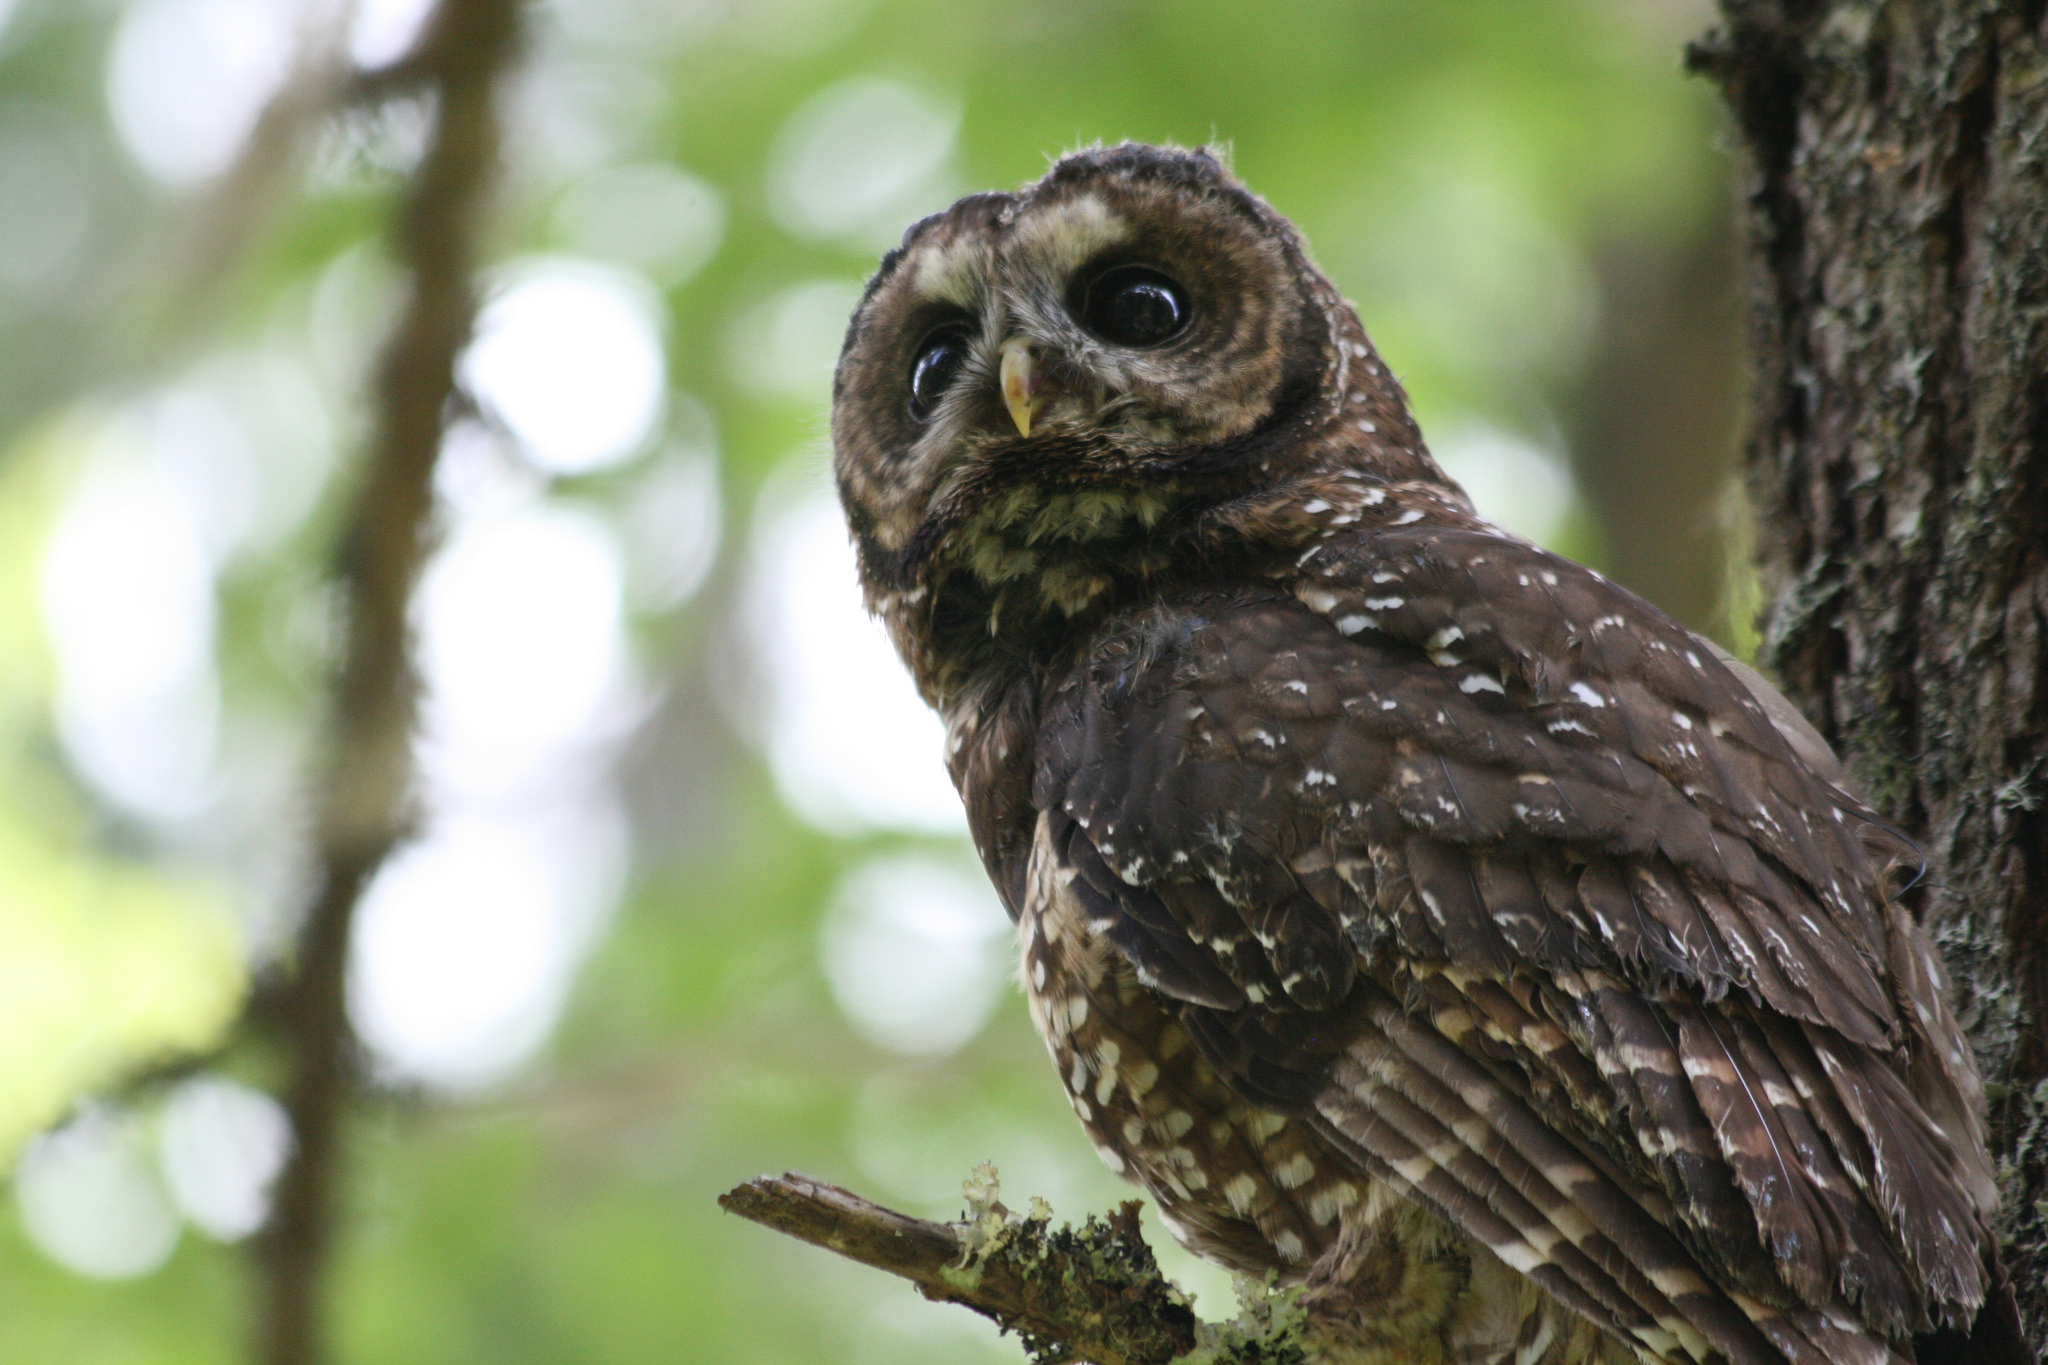 spotted owl controversy essays The northern spotted owl controversy in 1990, the logging industry estimated up to 30,000 of 168,000 jobs would be lost because of the owl's status.